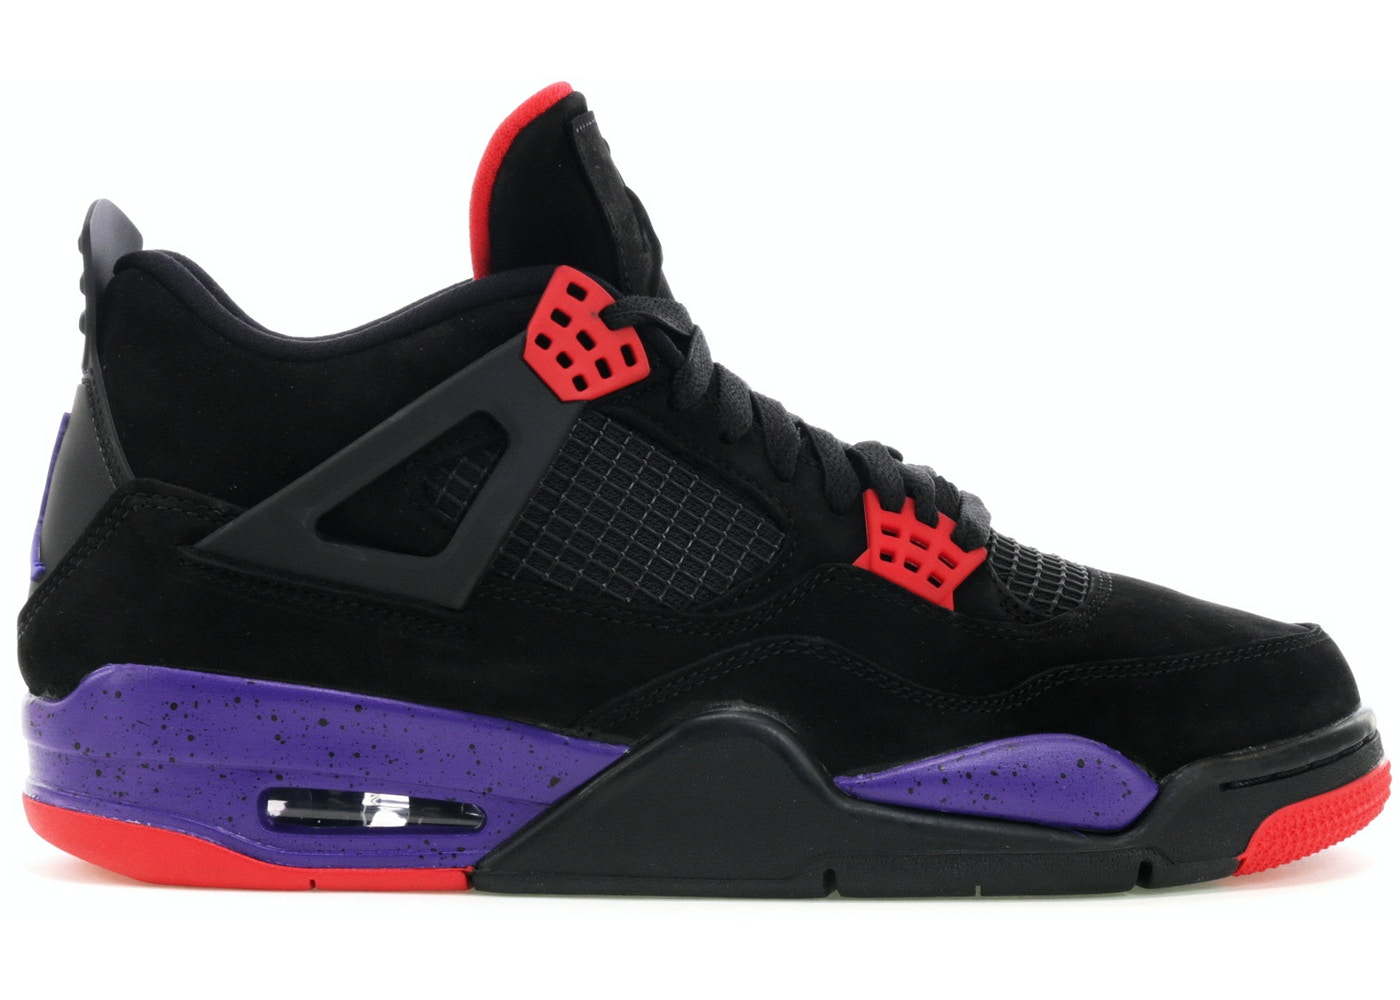 big sale 6a811 960cf Jordan 4 Retro Raptors - AQ3816-065